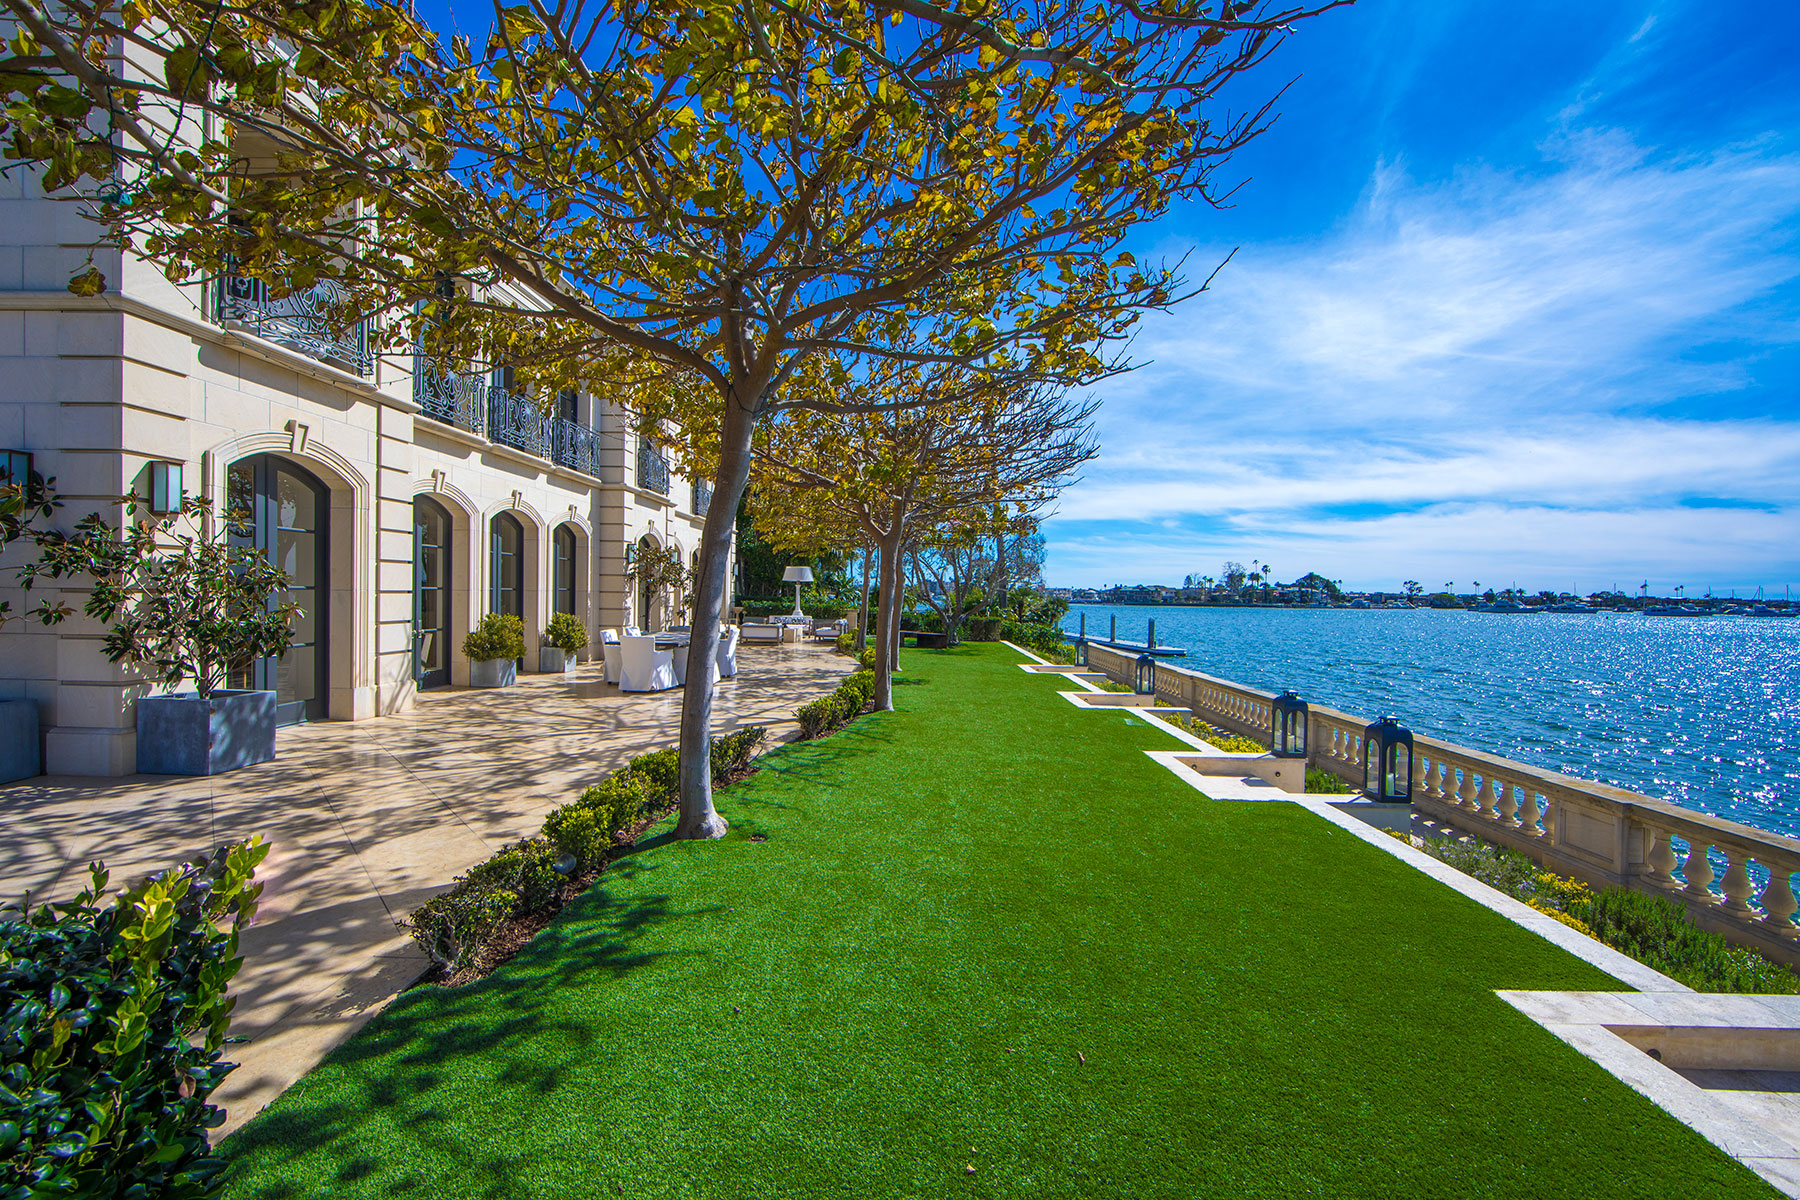 Single Family Home for Active at 18 Harbor Island 18 Harbor Island Newport Beach, California 92660 United States